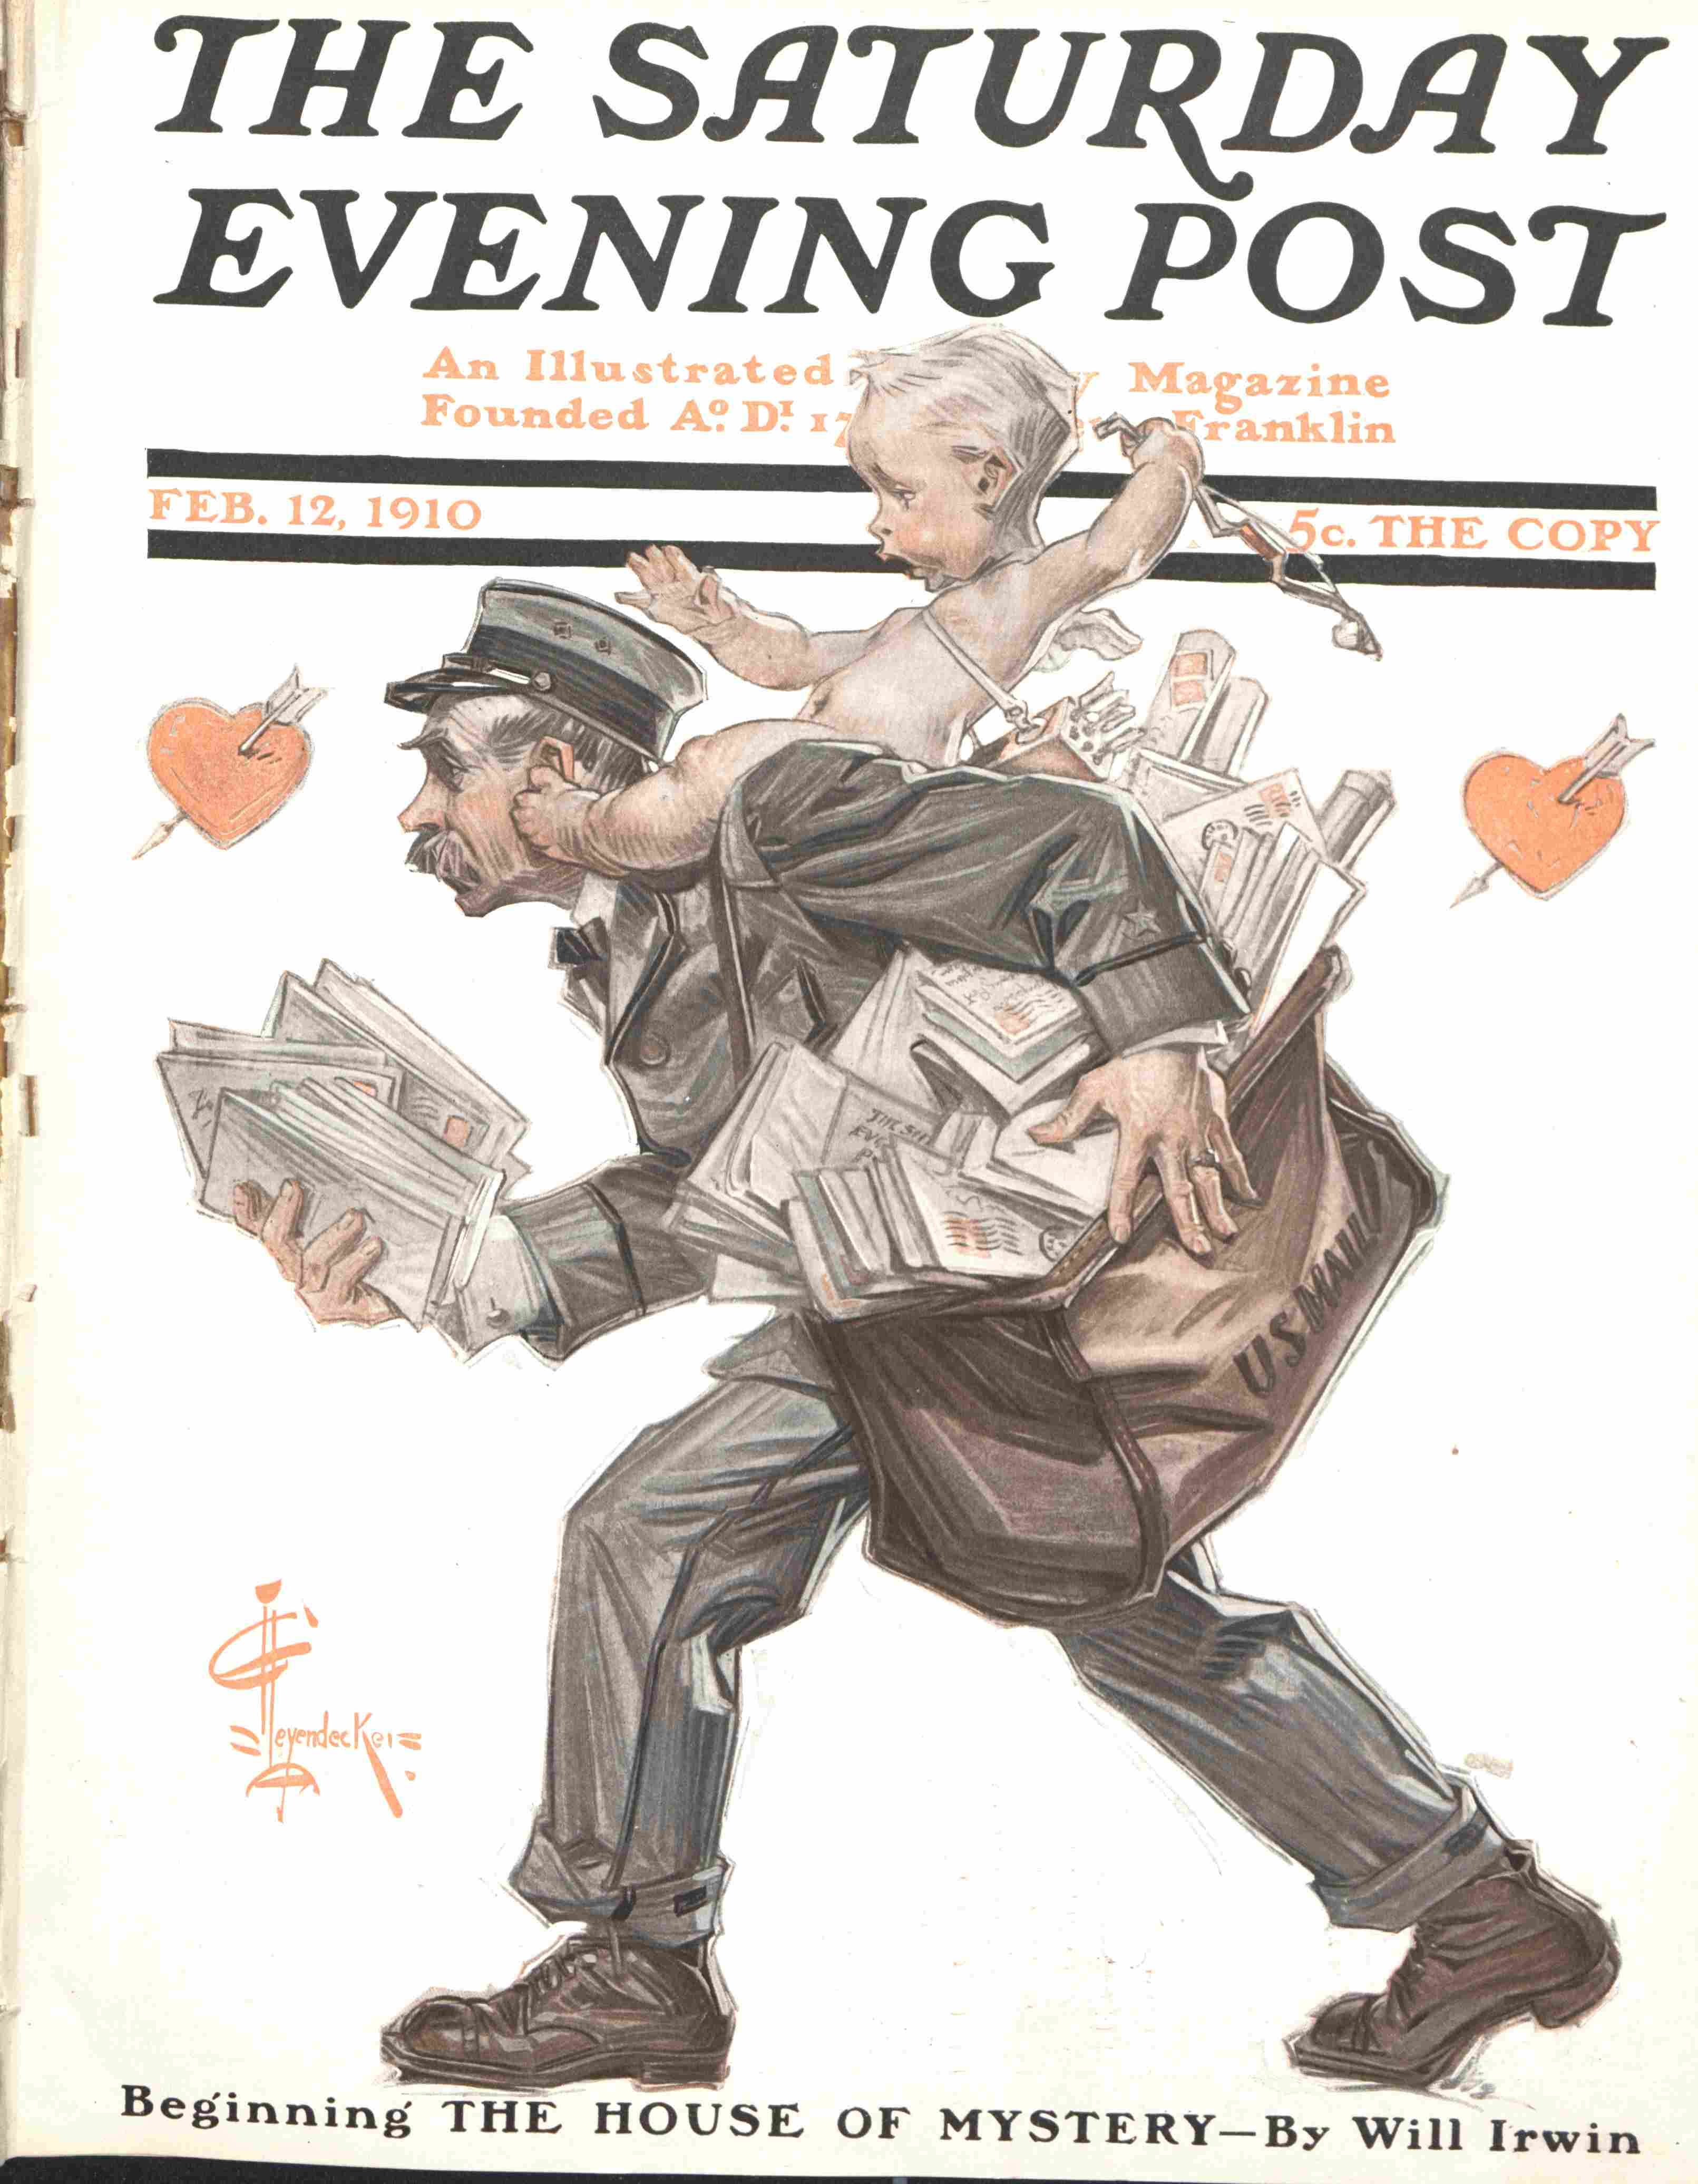 #Leyendecker cover from the February 12th, 1910 issue of The Saturday Evening Post.